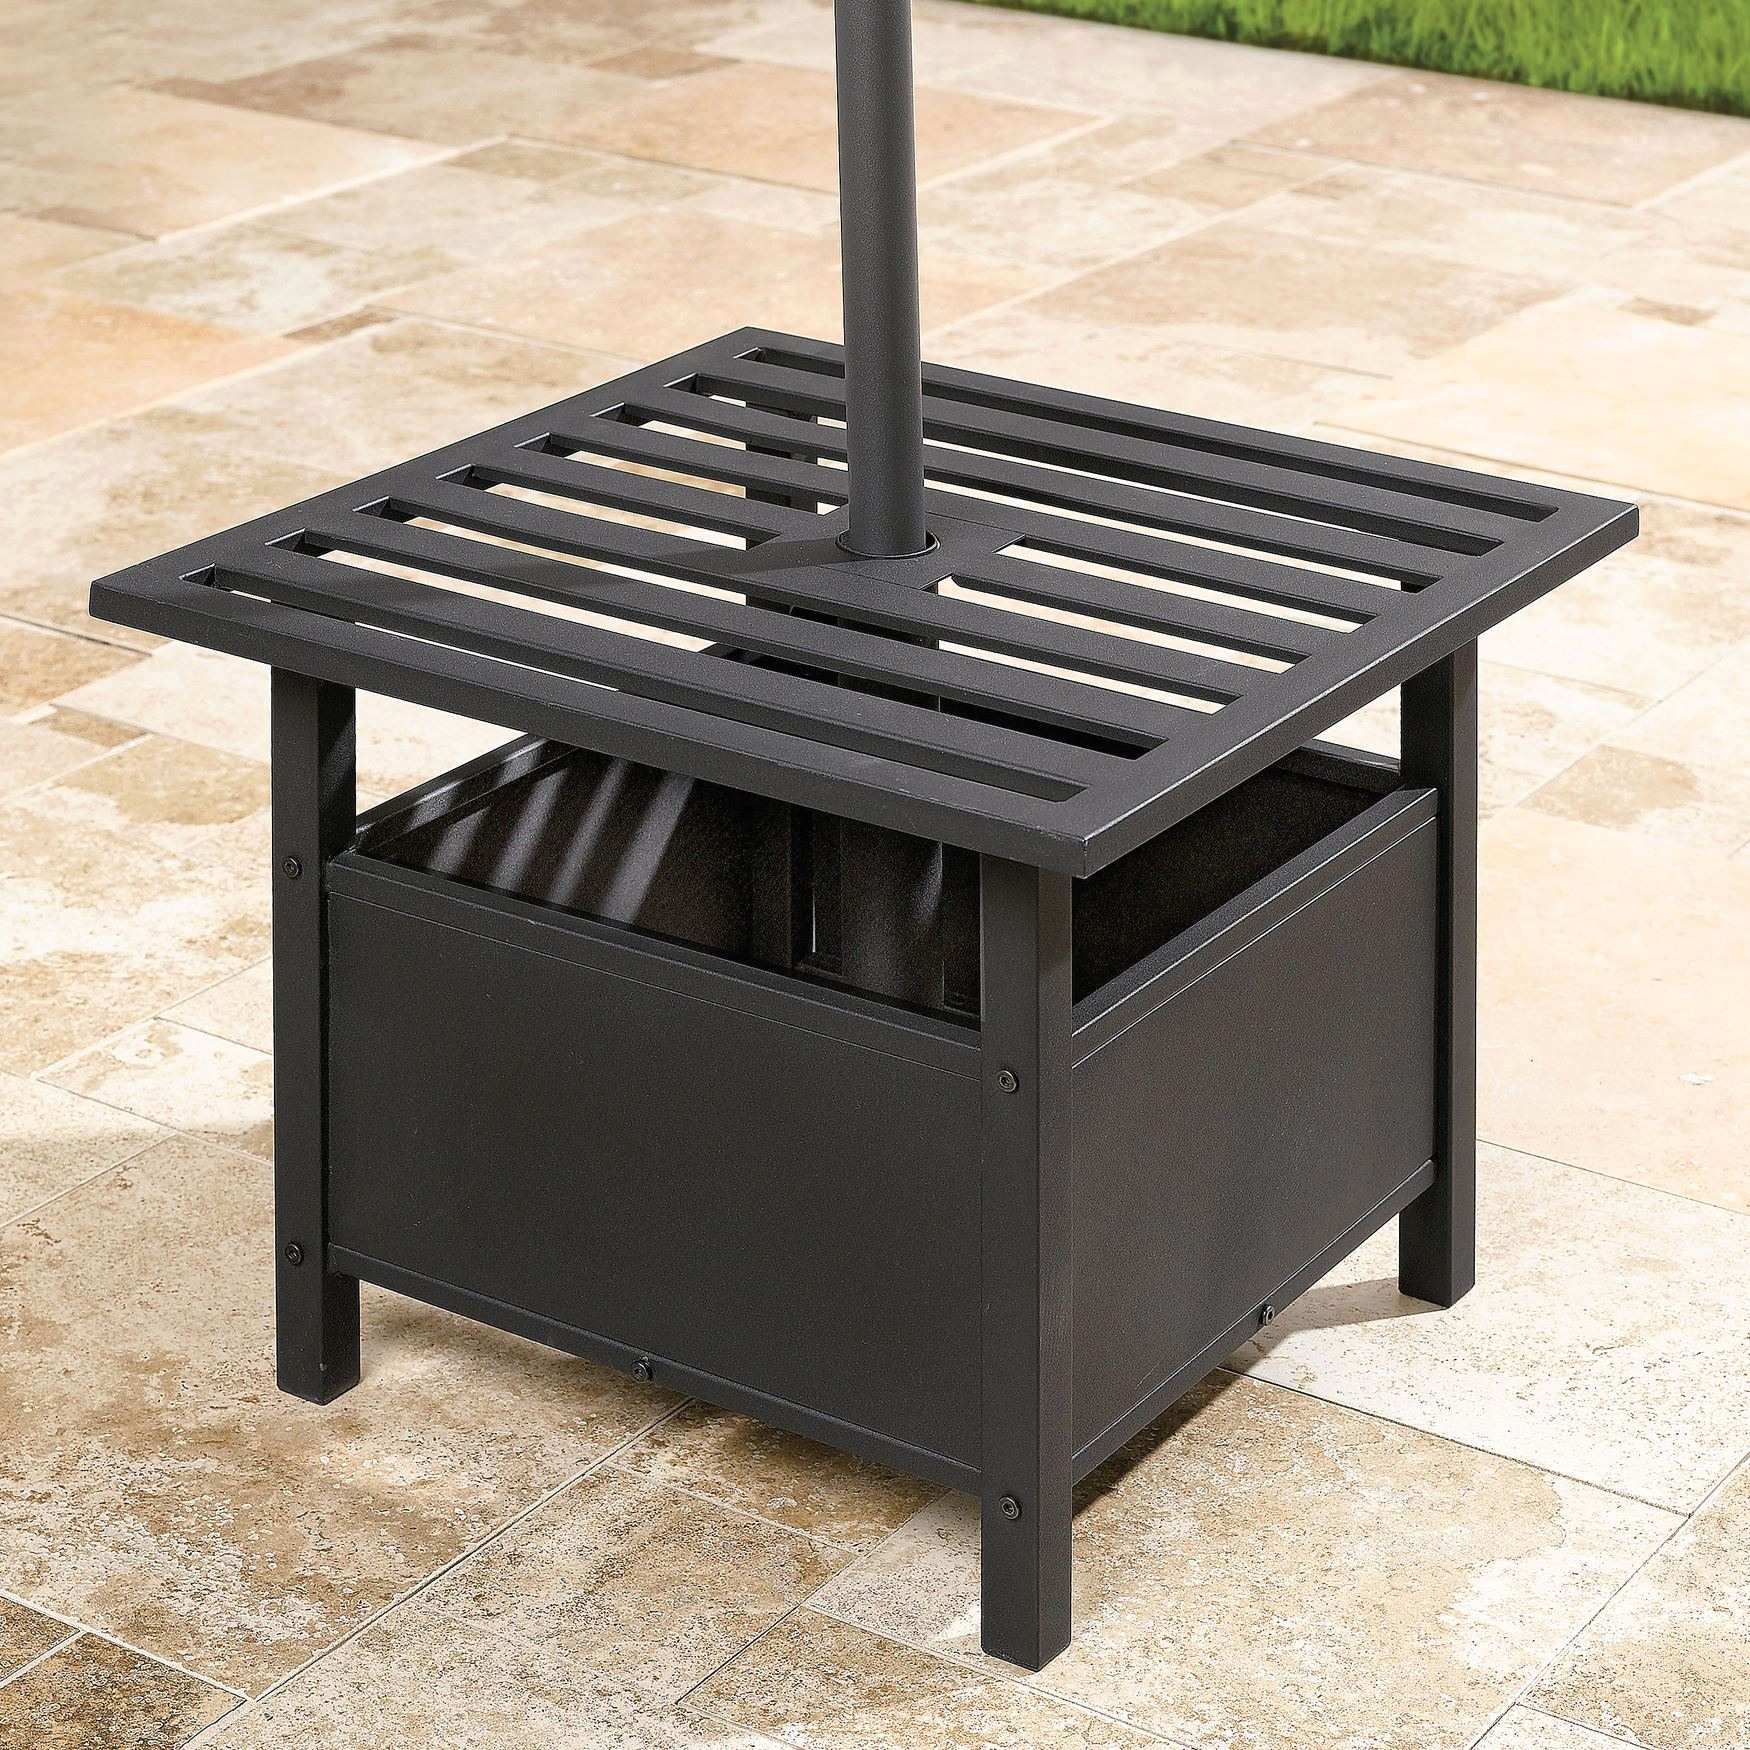 inspiring outdoor patio side table with luxe accent elegant from umbrella stand umbrellas amp bases black reading light for stacking tables square lights dining vintage sofa